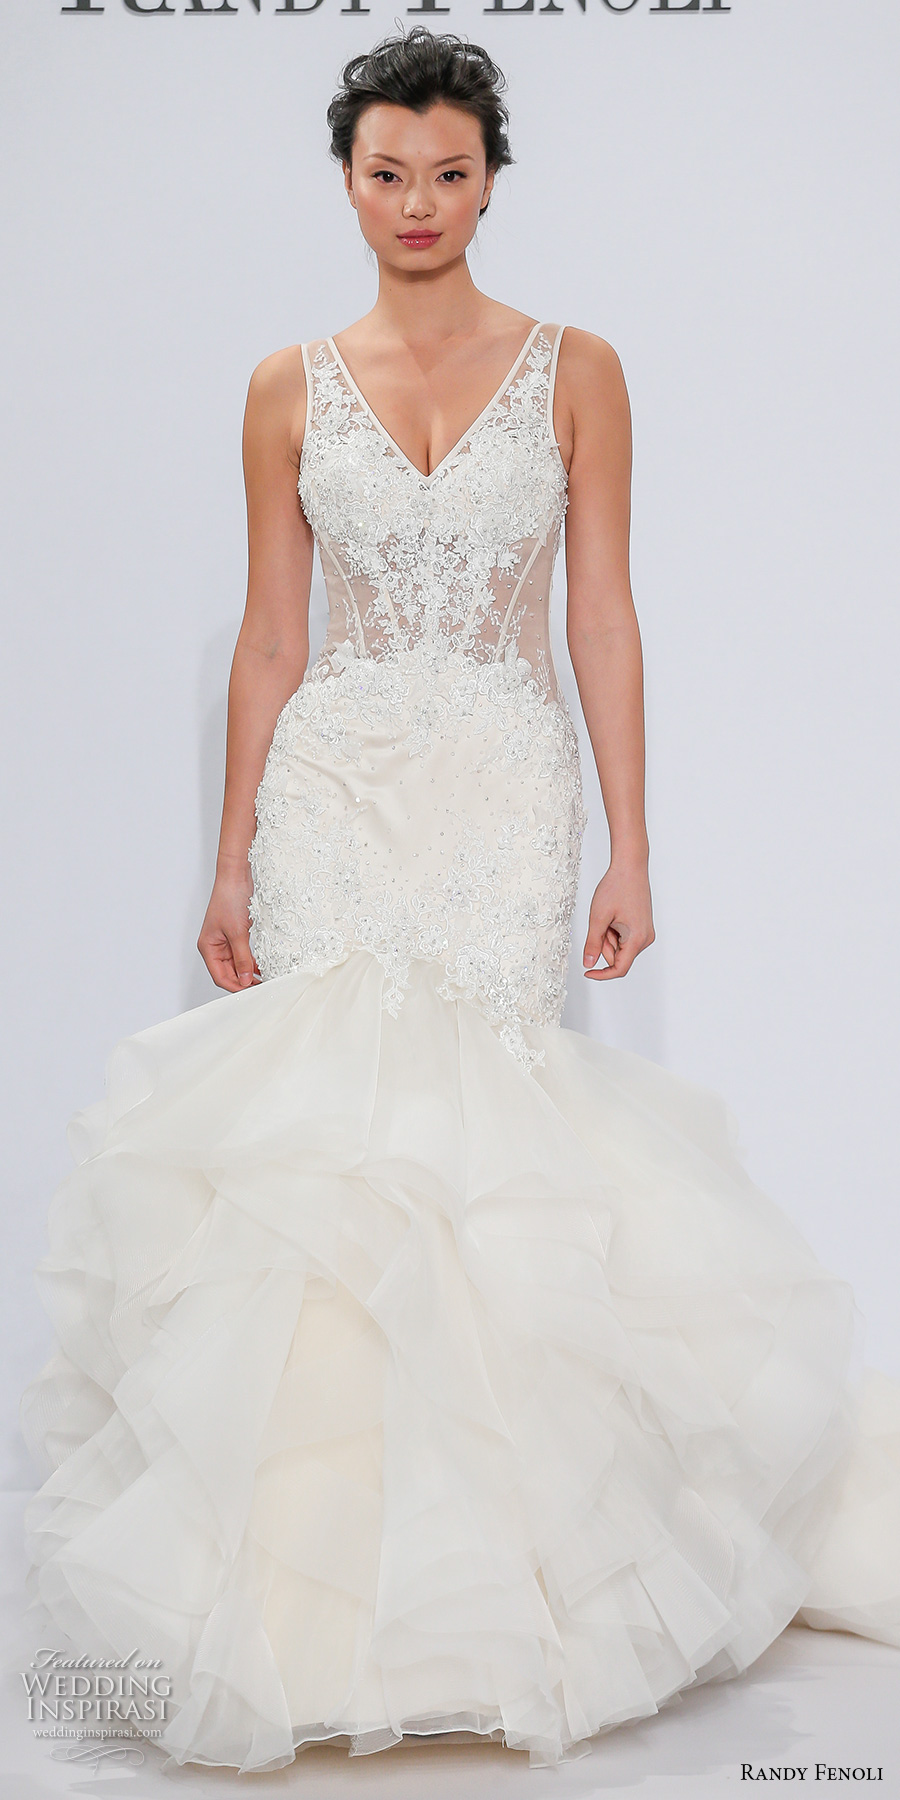 randy fenoli spring 2018 bridal sleeveless v neck heavily embellished bodice ruffled skirt elegant glamorous mermaid wedding dress open v back chapel train (24) mv